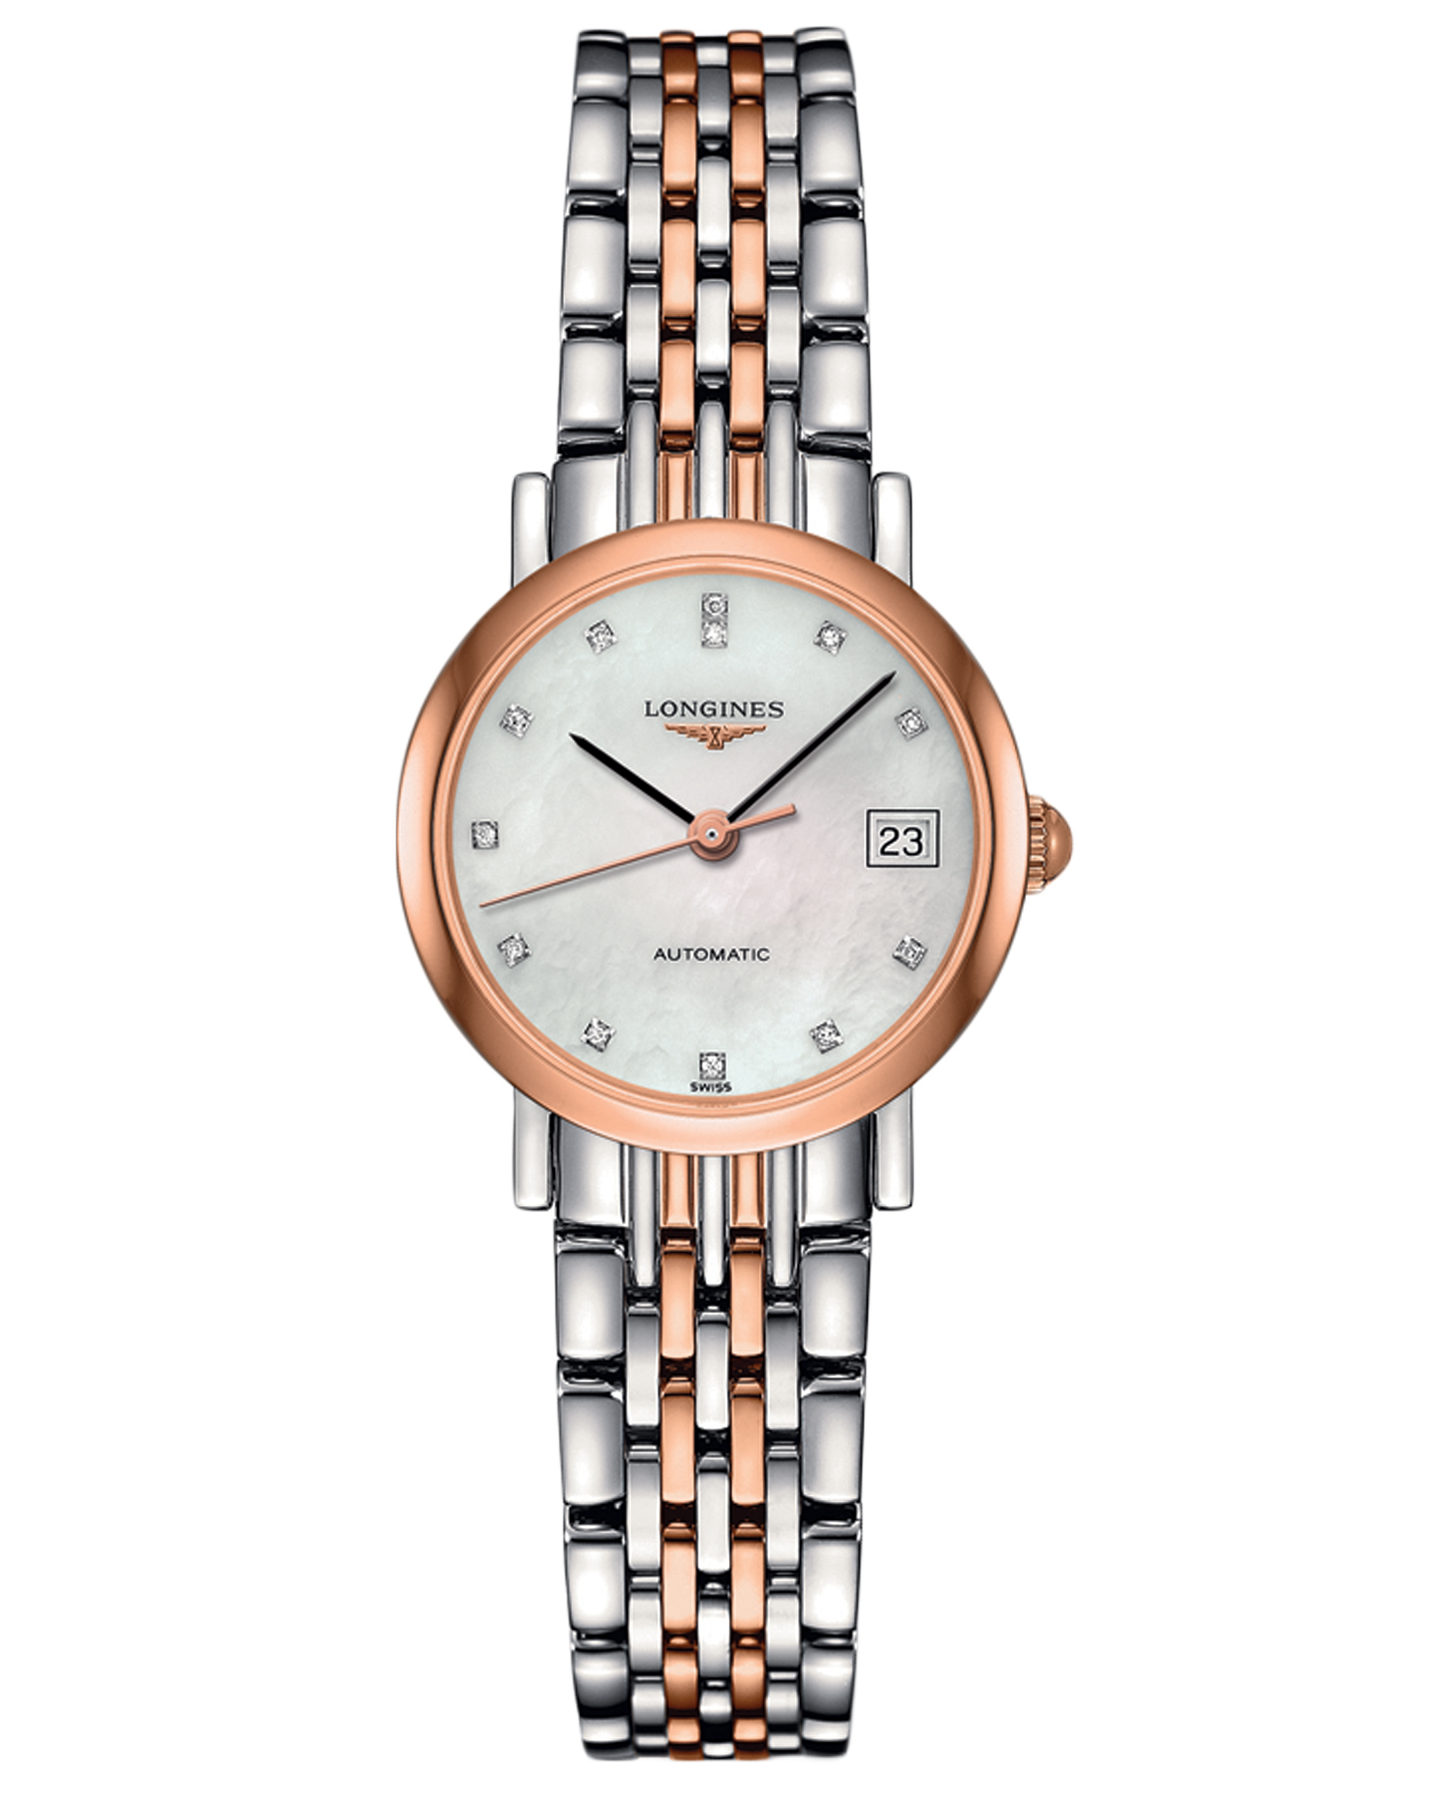 97b05515c54 Longines The Longines Elegant Collection Ouro e Aço - L43095877   Boutique  dos Relógios